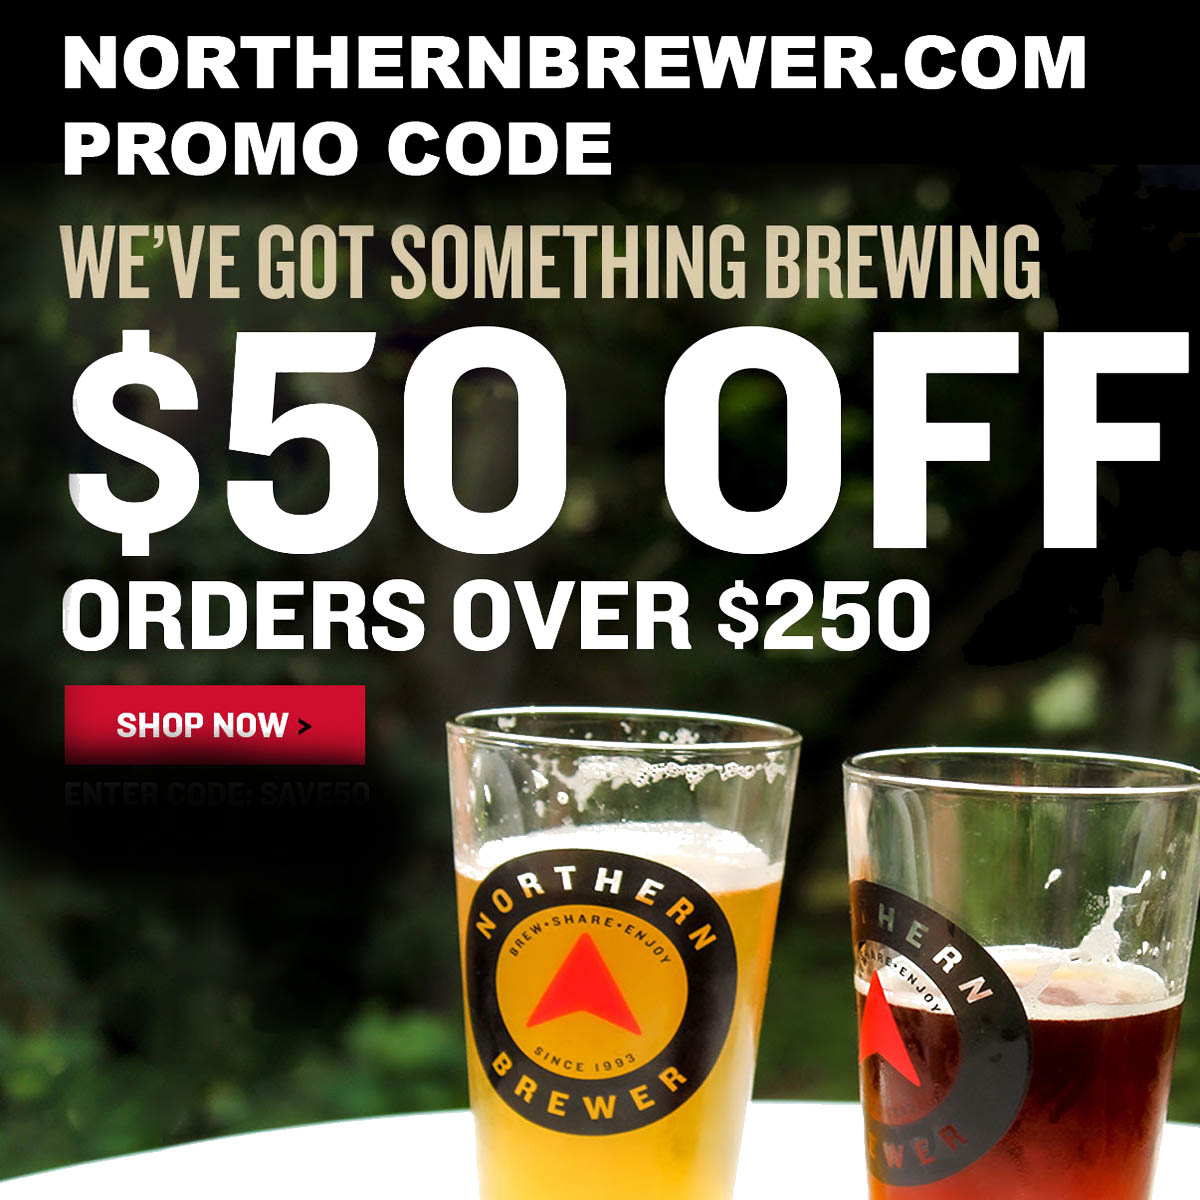 Northern Brewer Save $50 Off Orders of $250 Or More With This NorthernBrewer.com Promo Code Coupon Code